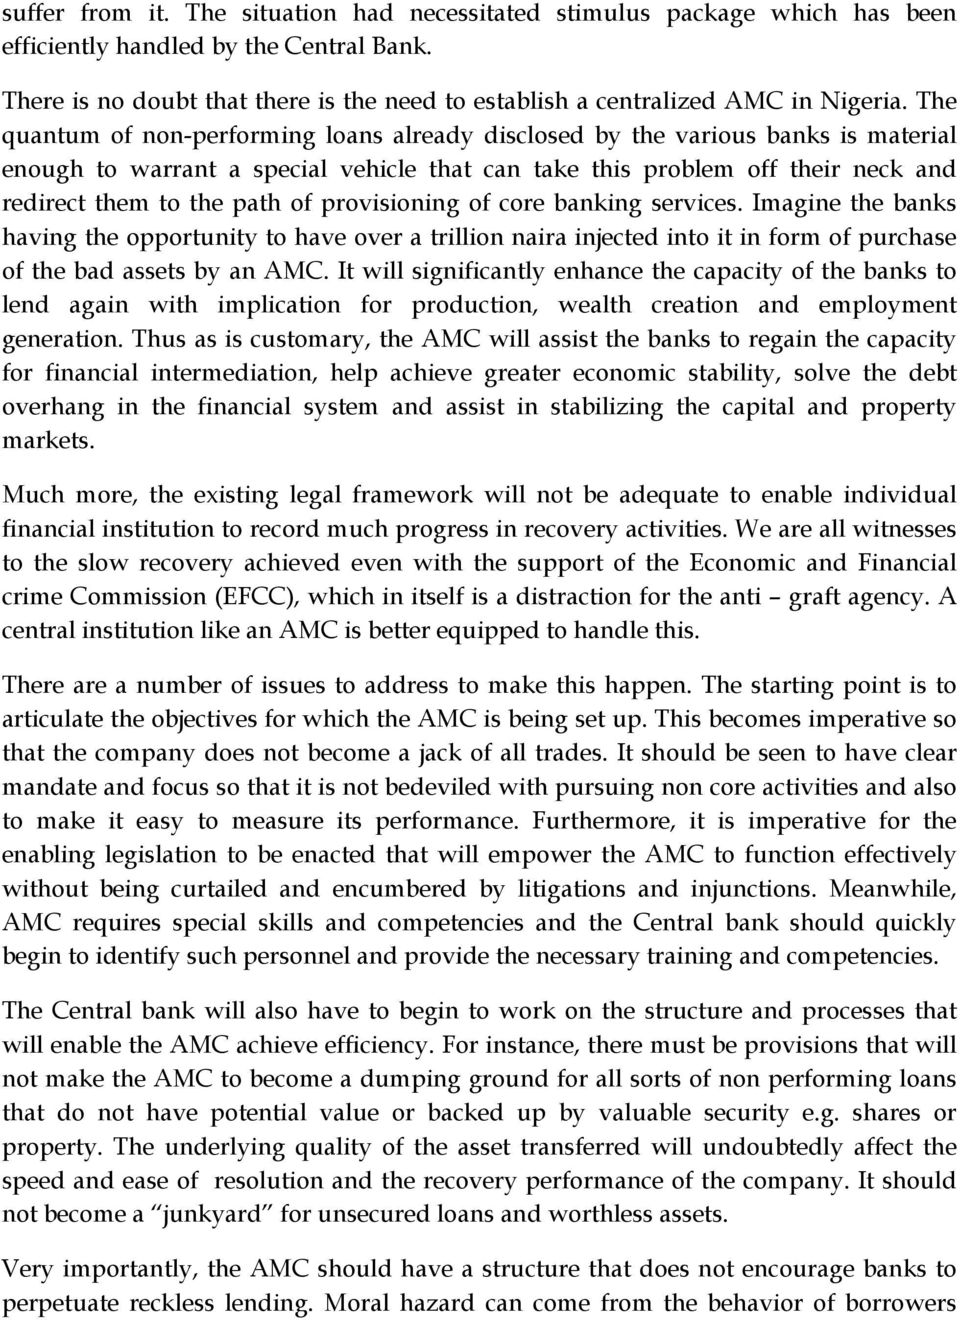 The quantum of non-performing loans already disclosed by the various banks is material enough to warrant a special vehicle that can take this problem off their neck and redirect them to the path of